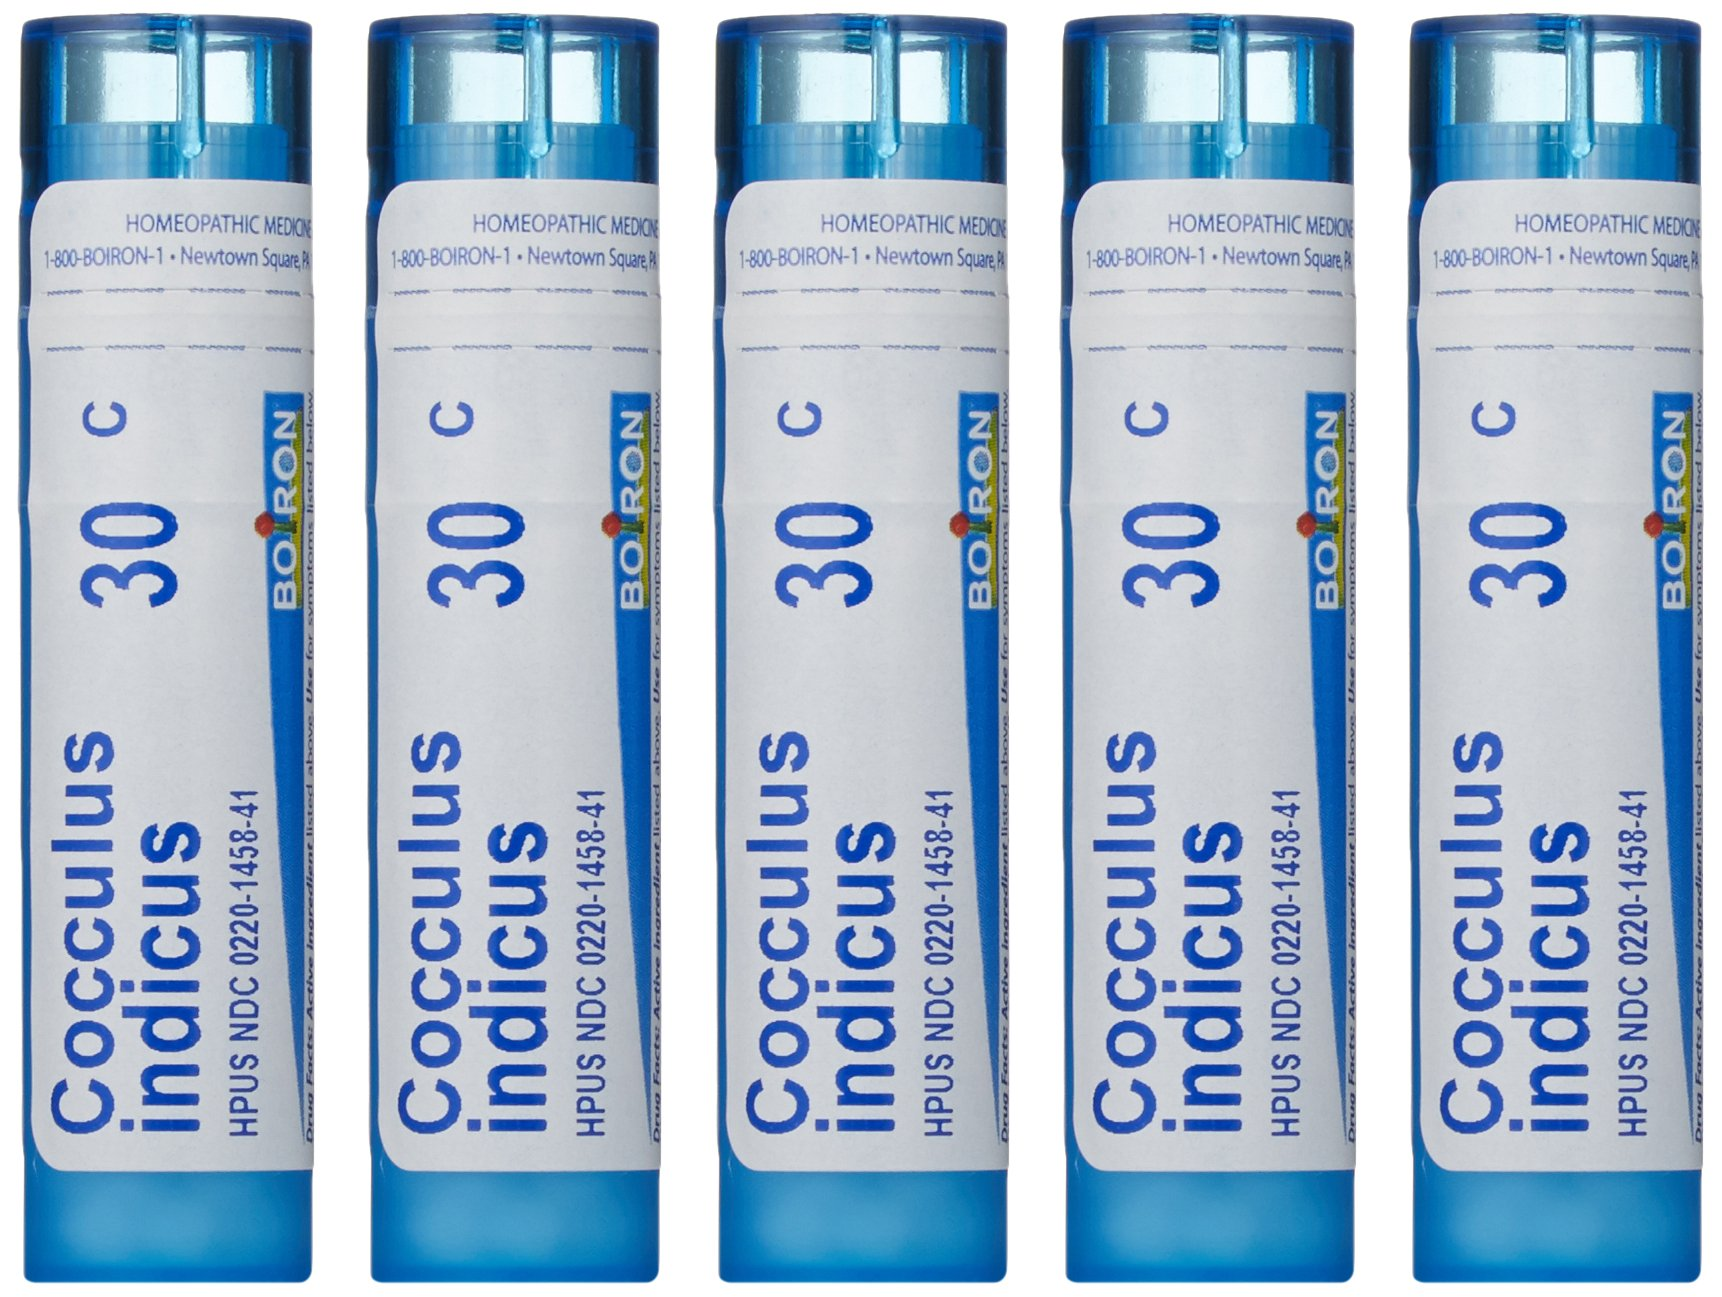 Boiron Cocculus Indicus 30C, Homeopathic Medicine for Motion Sickness (Pack of 5) by Boiron